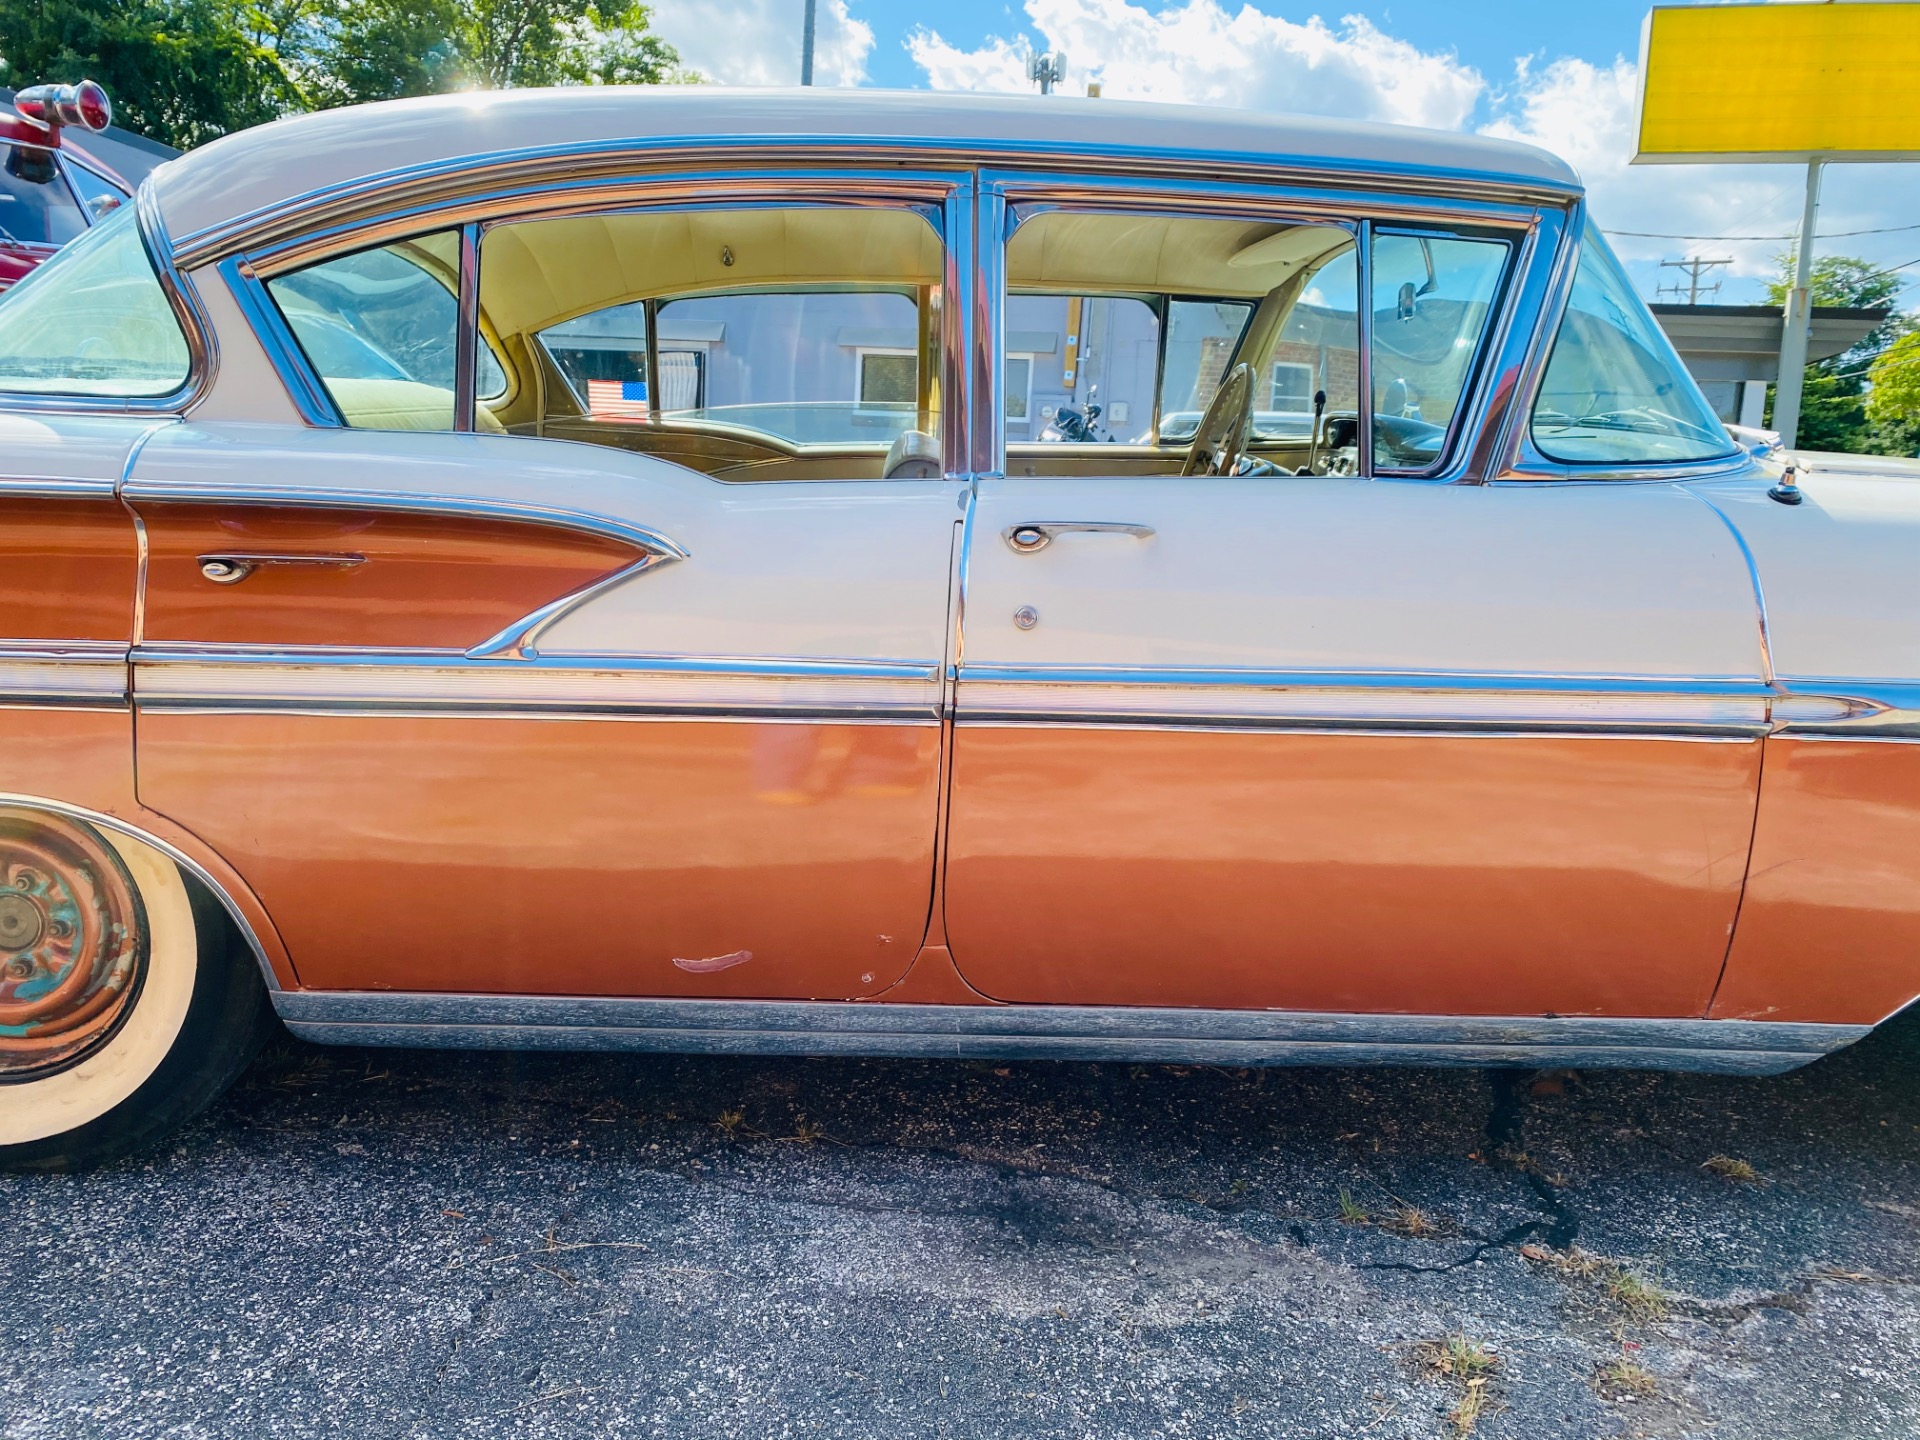 Used 1958 Chevrolet Bel Air - 4 DOOR SEDAN - 283 V8 ENGINE - | Mundelein, IL